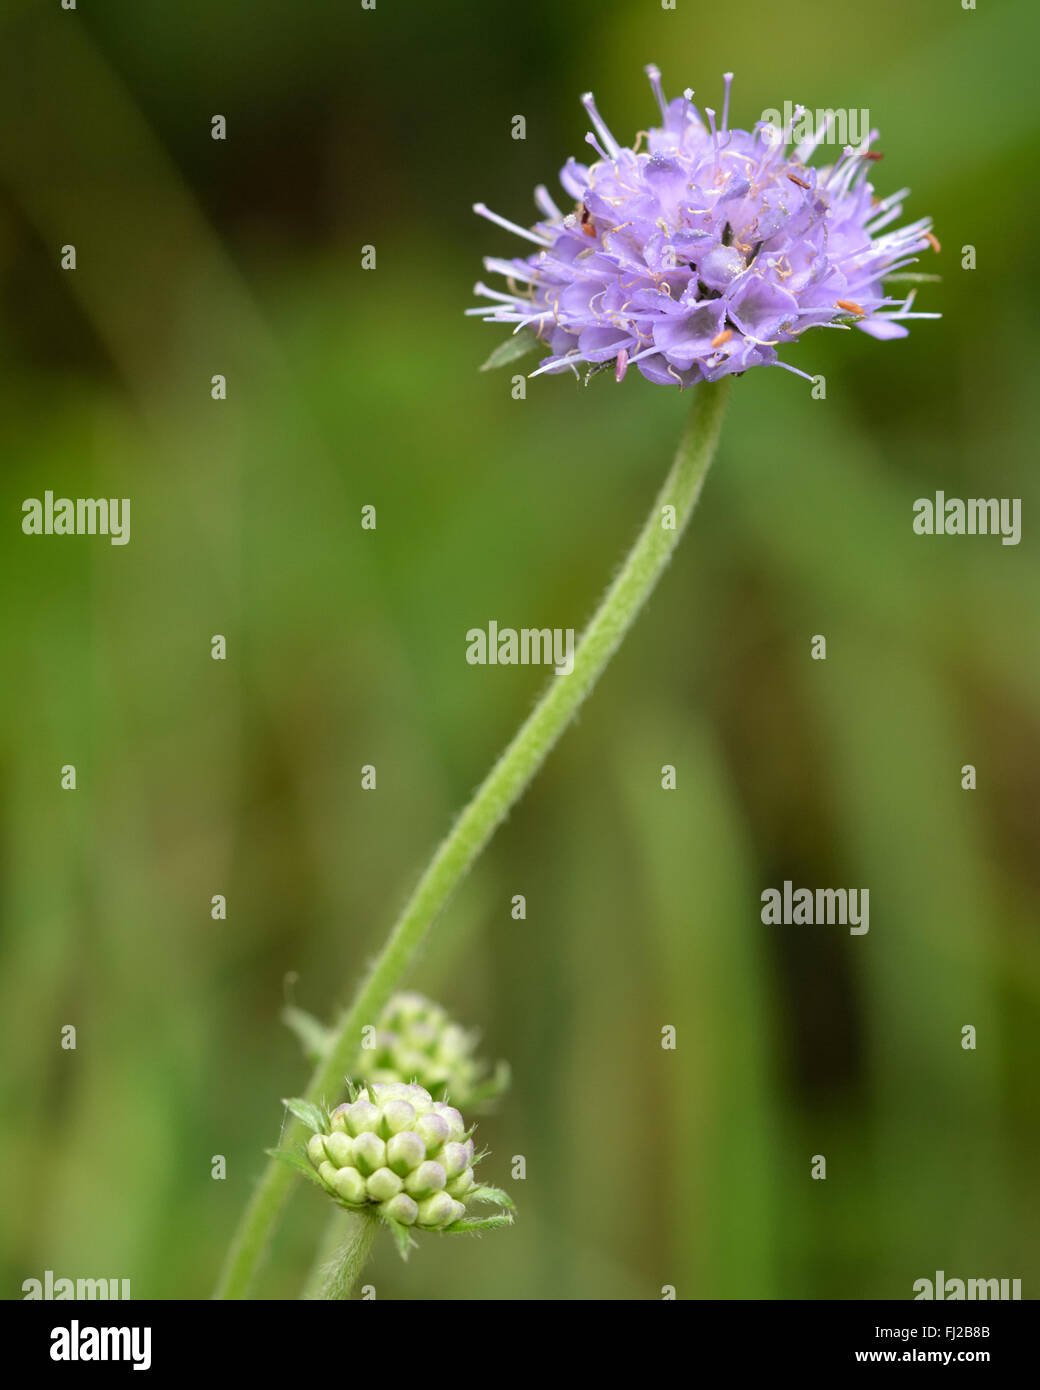 Devil's-bit scabious (Succisa pratensis). Mauve flower on plant in the family Dipsaceae, flowering in a British - Stock Image